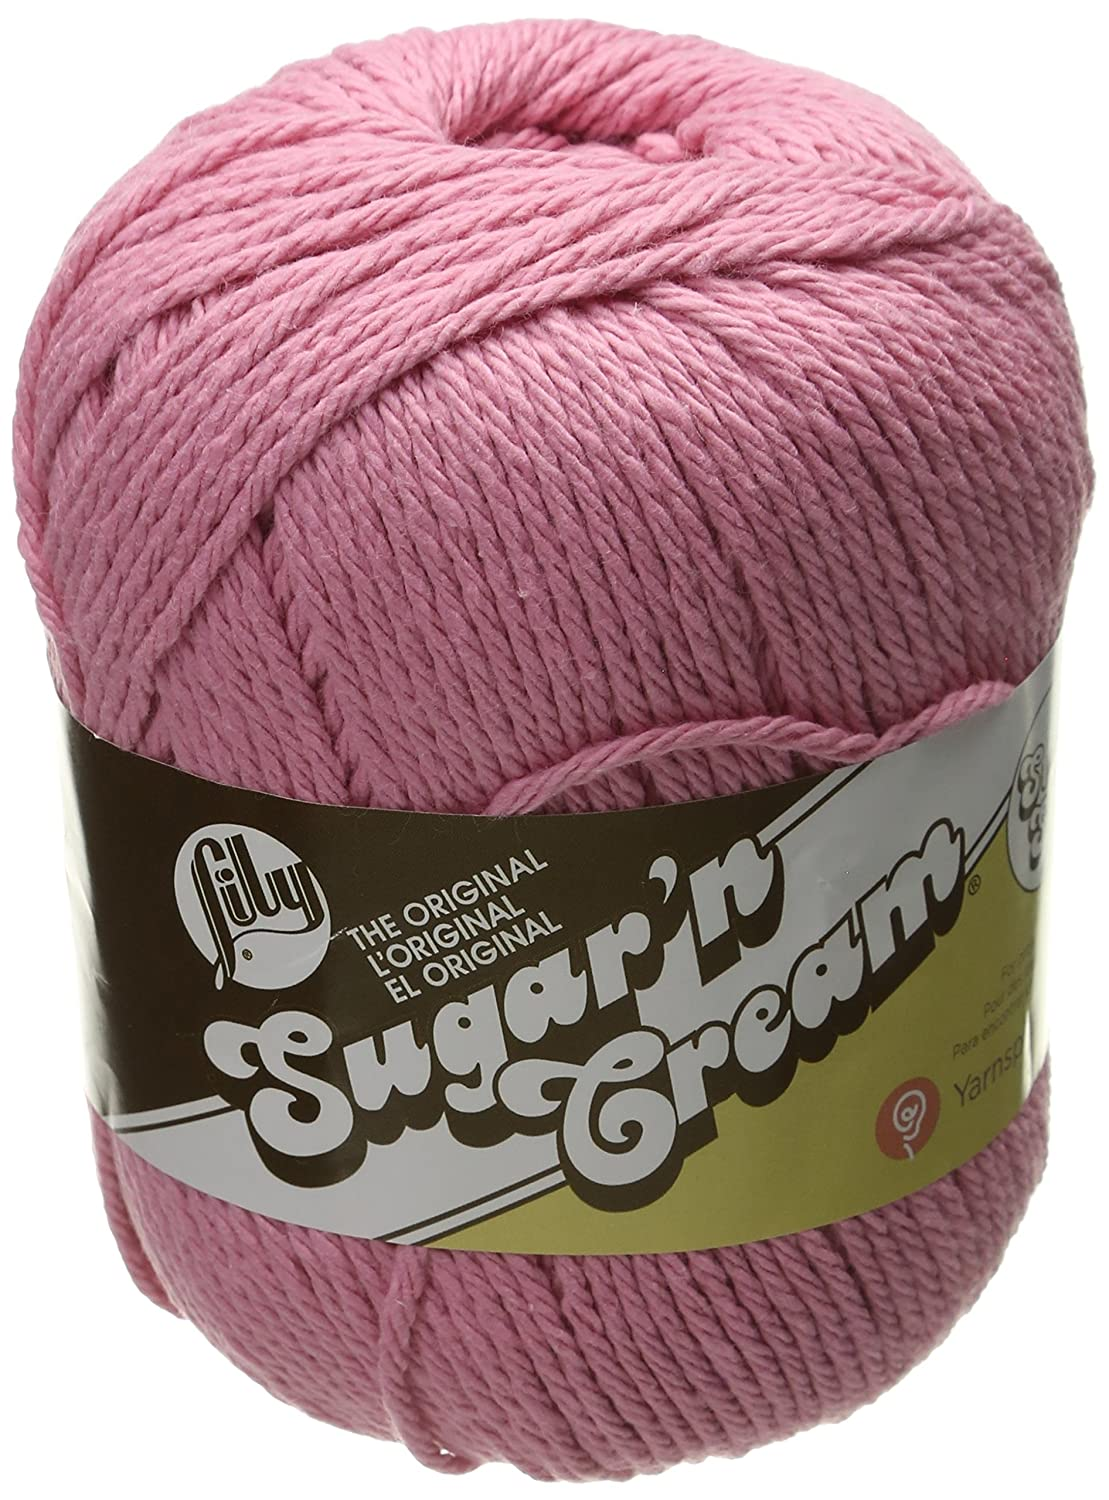 Lily Sugar 'N CreamSuper Size Solid Yarn - (4) Medium Gauge 100% Cotton - 4 oz -Rose Pink-Machine Wash & Dry